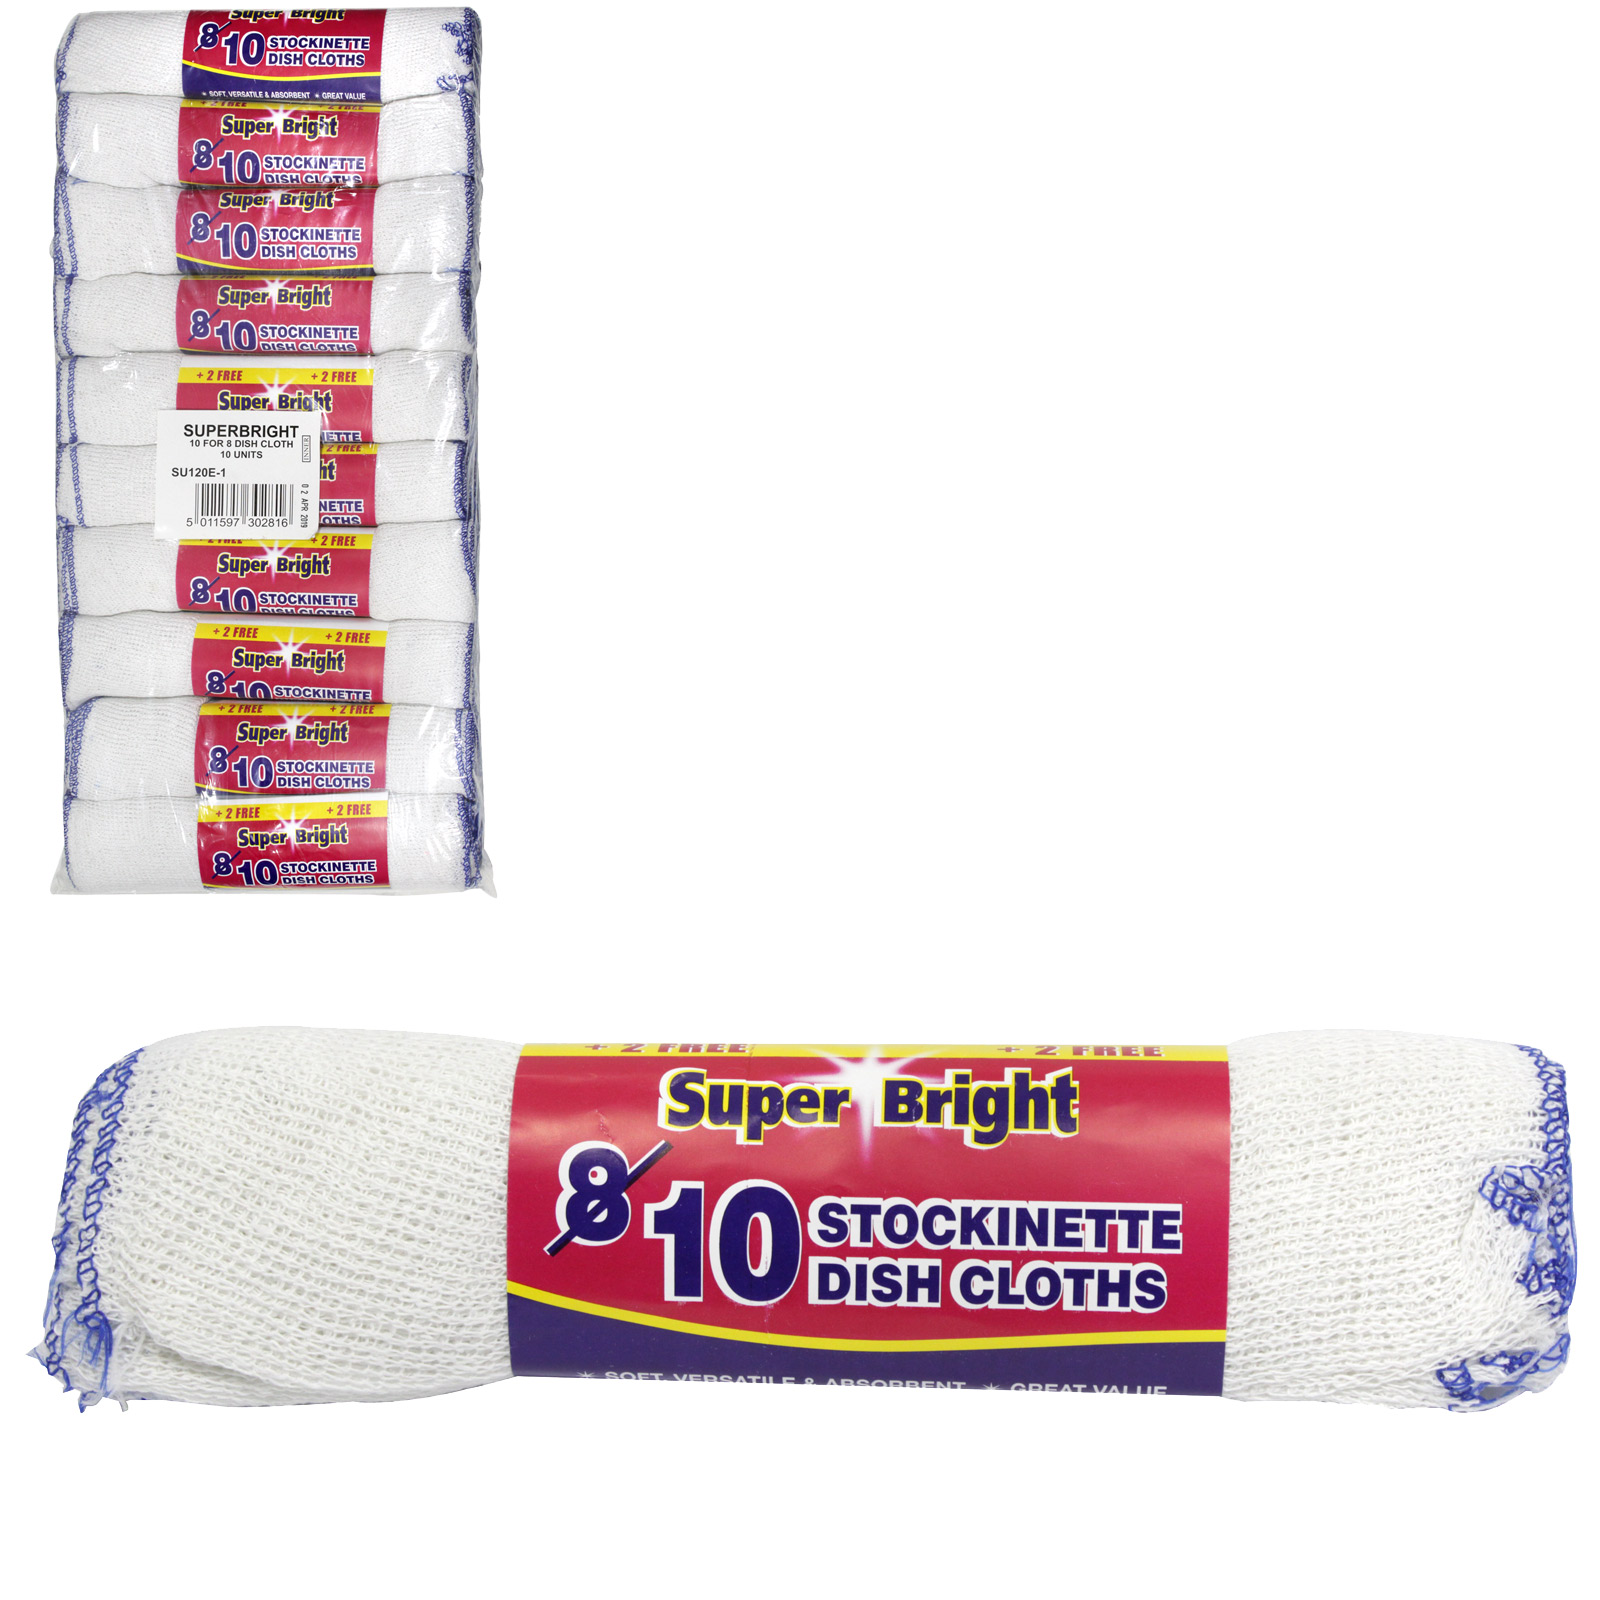 SUPERBRIGHT 10 FOR 8 DISHCLOTHS ON ROLL X10